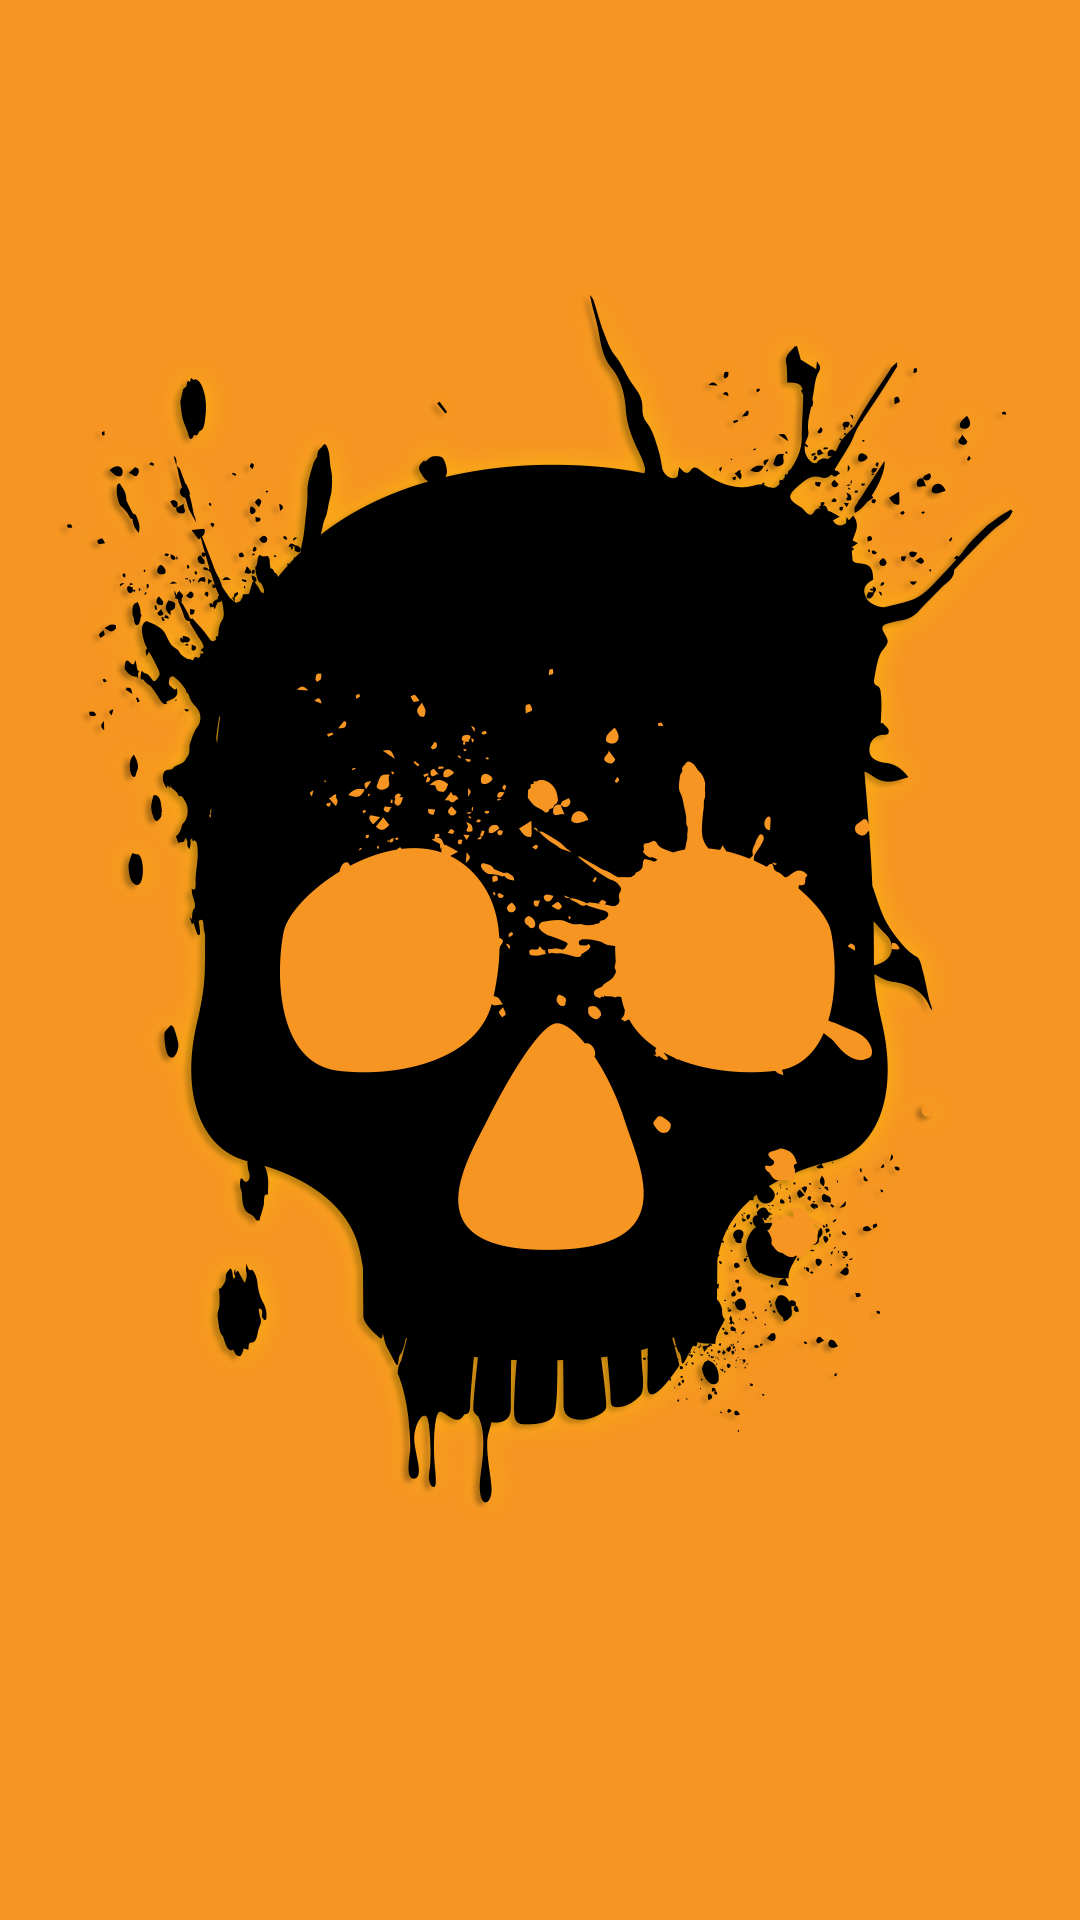 free hd wasted skull iphone wallpaper for download 0275